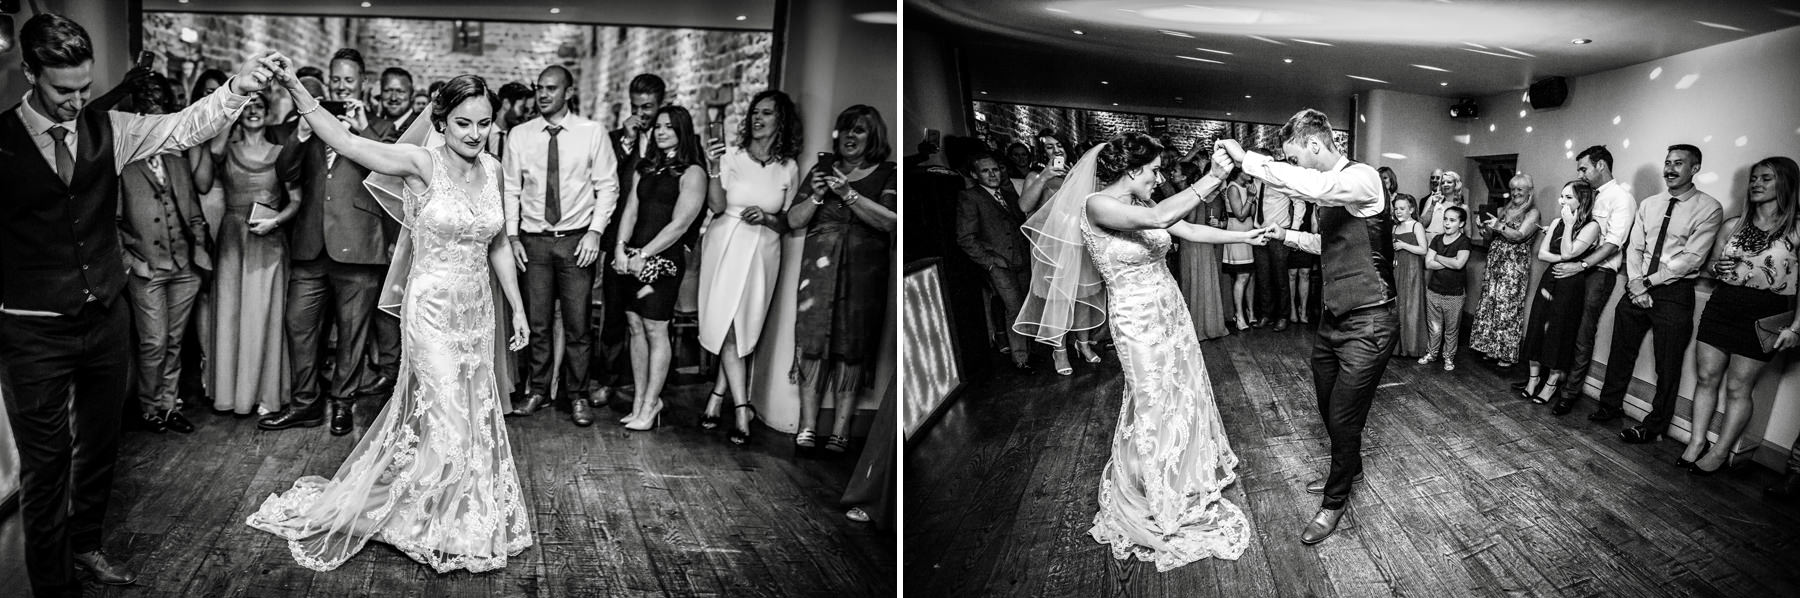 The Ashes Wedding Photography 53